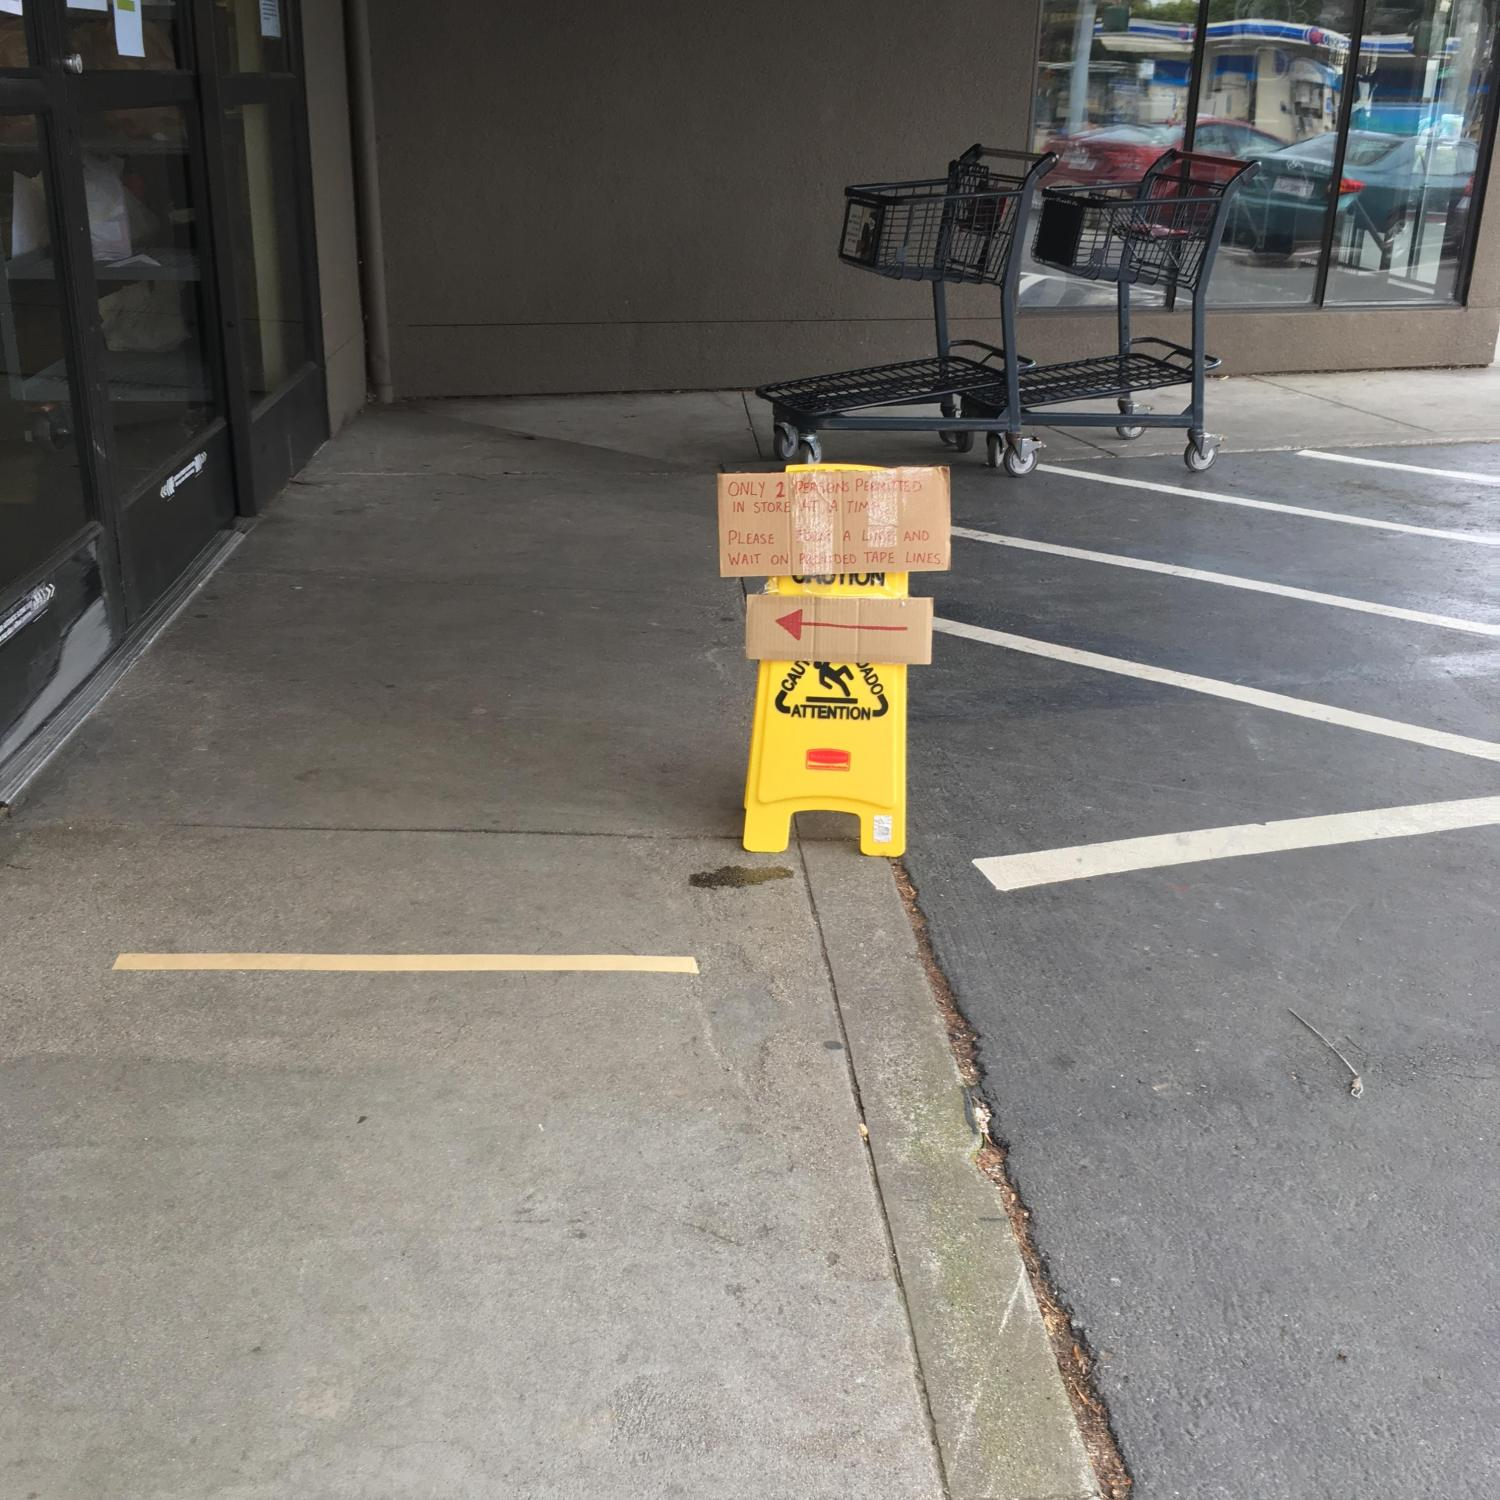 Social-distancing sign in red marker on cardboard, taped to a yellow CAUTION sign